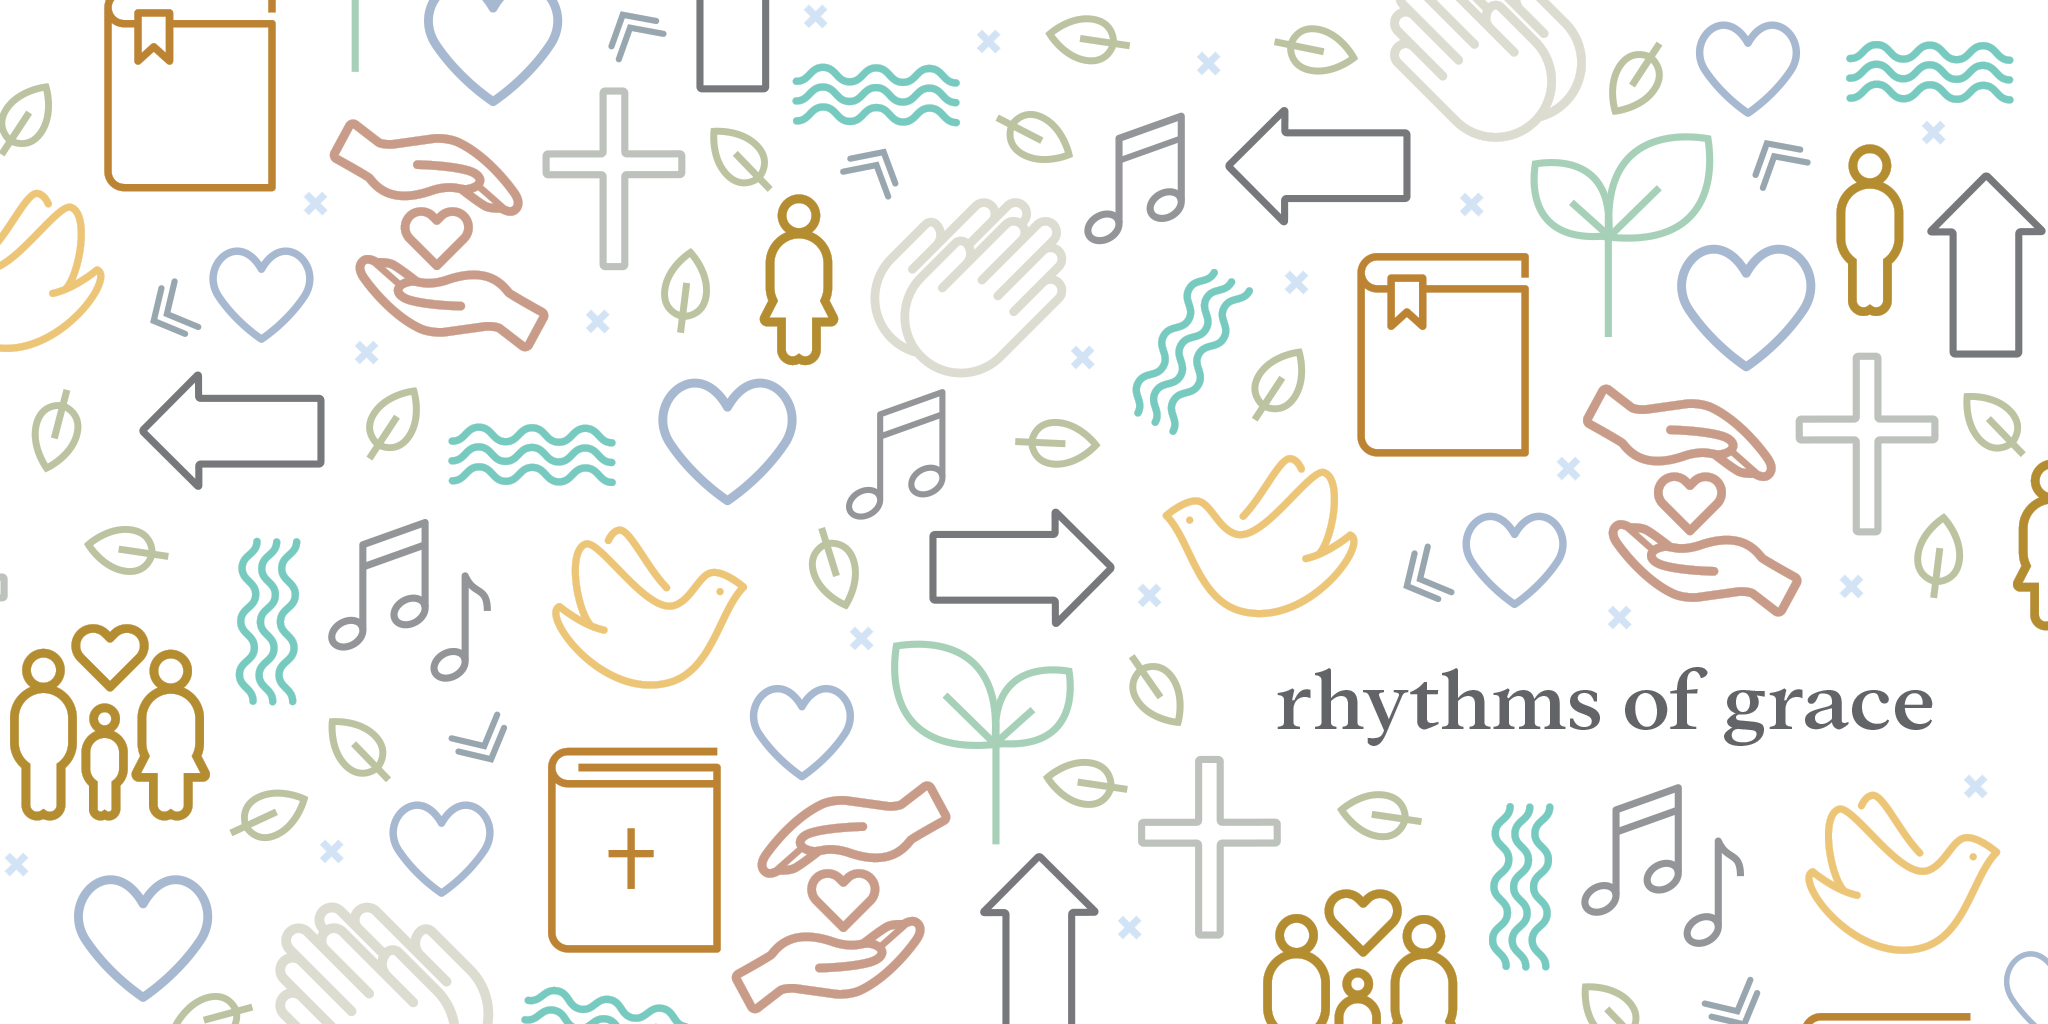 rhythms of grace art